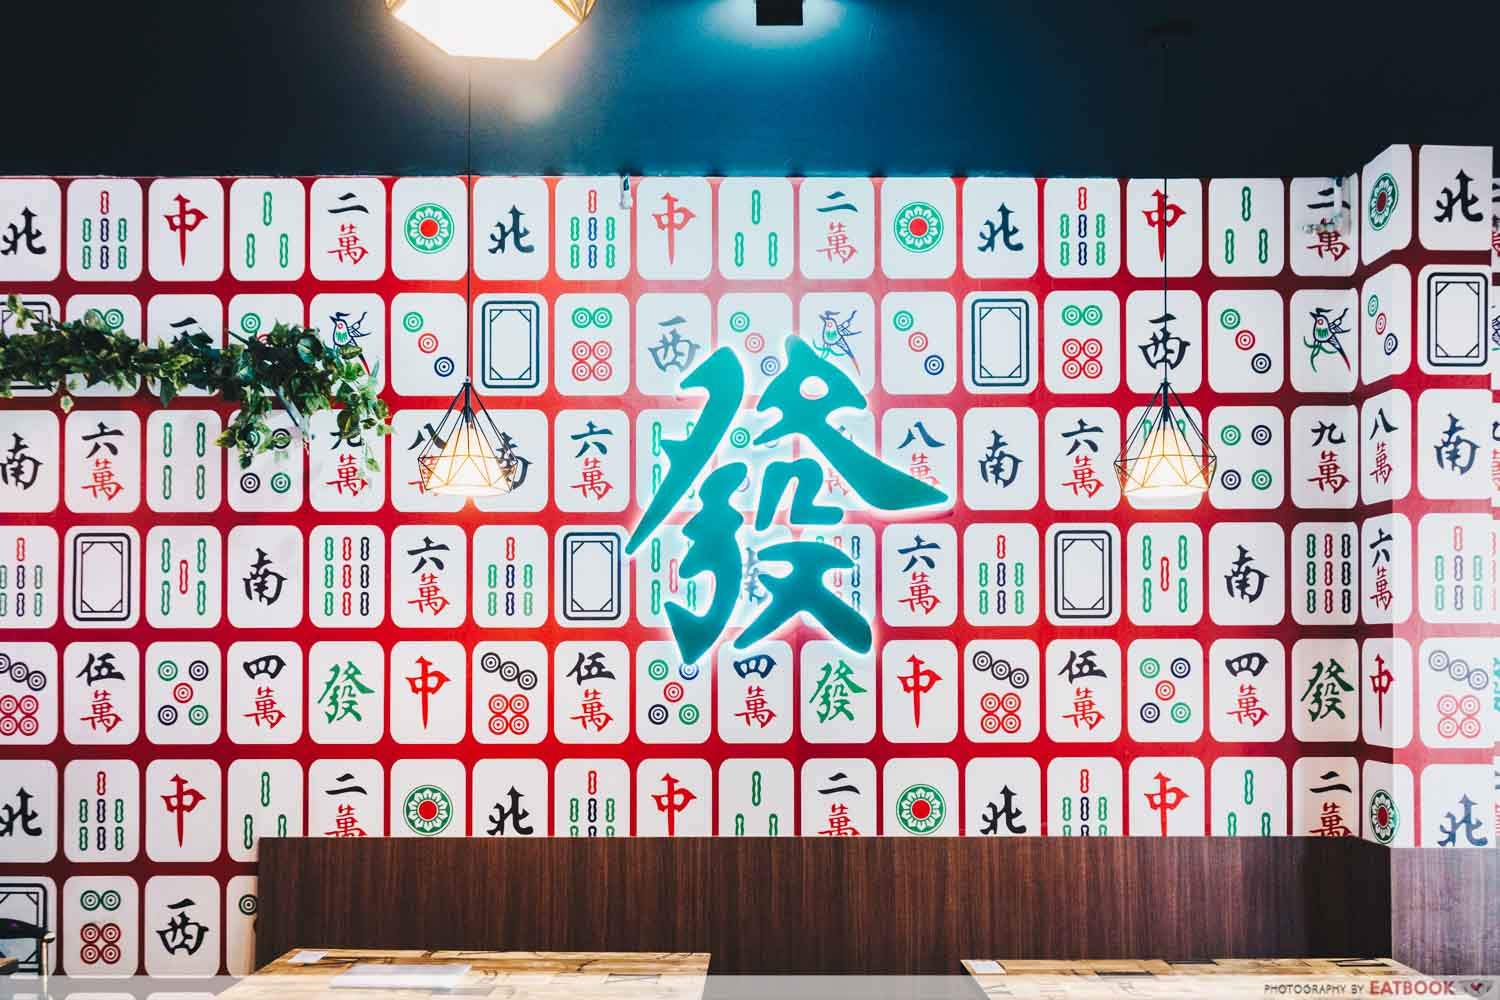 New cafes and restaurants in May 2021 - Tian Wang